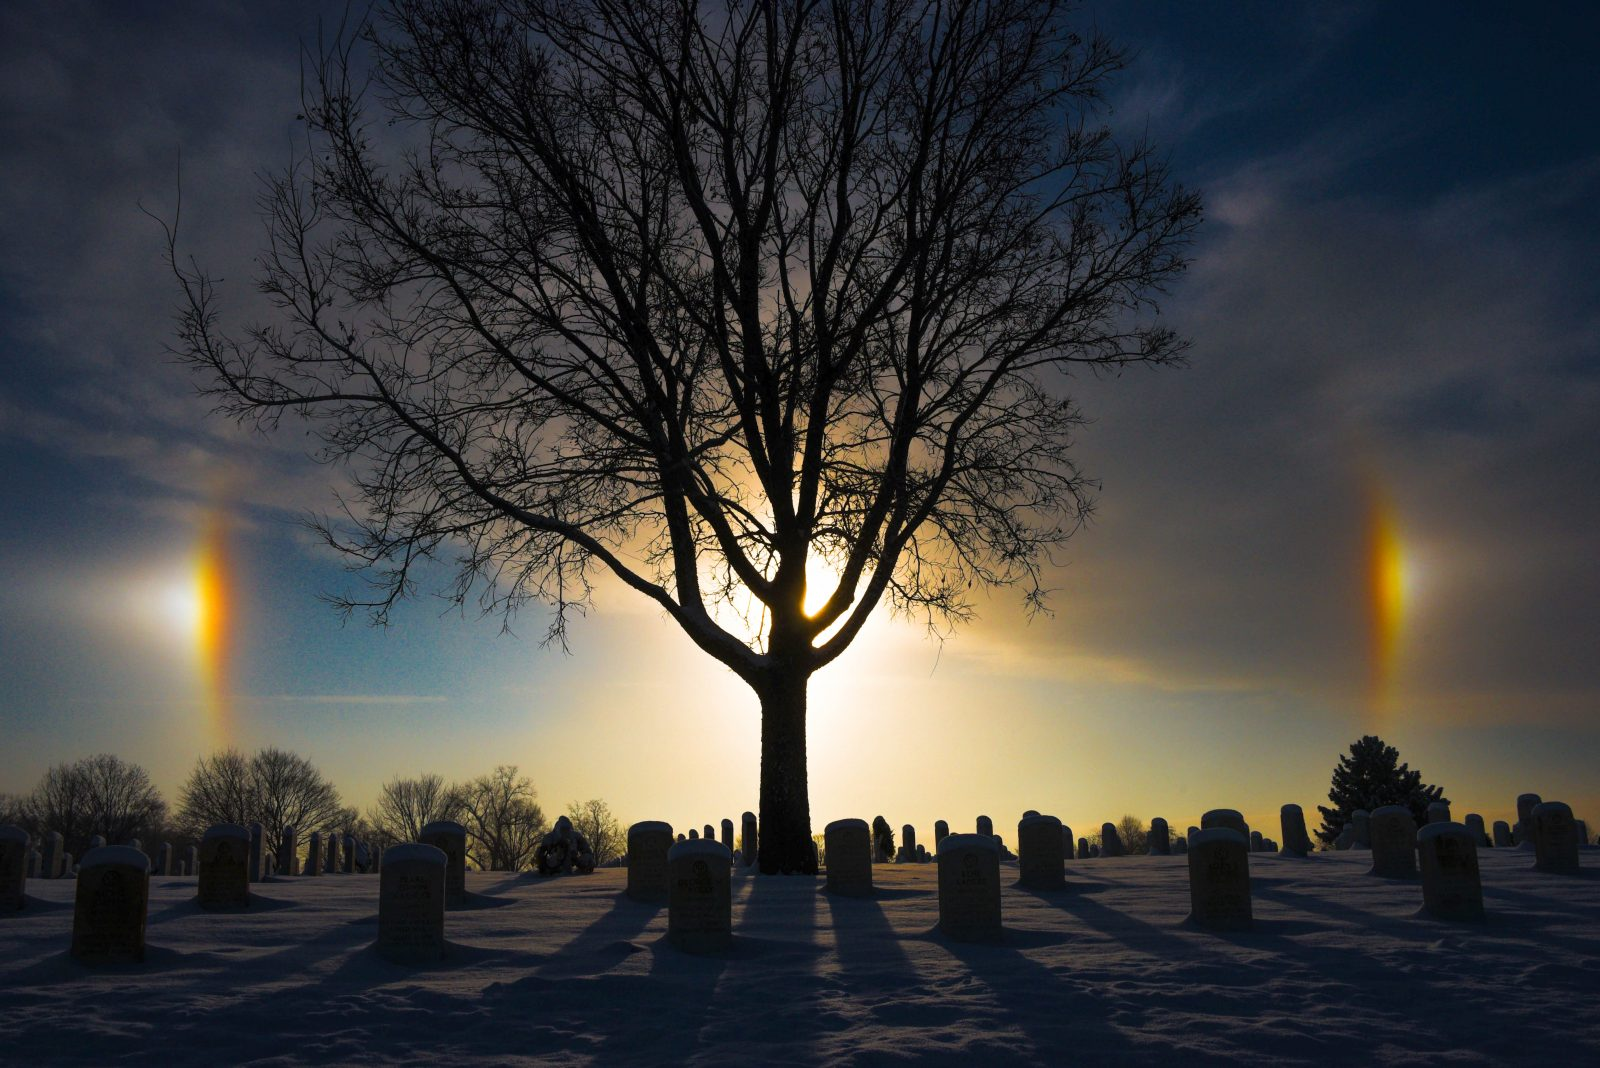 Sun Dogs Over Fort Snelling National Cemetery